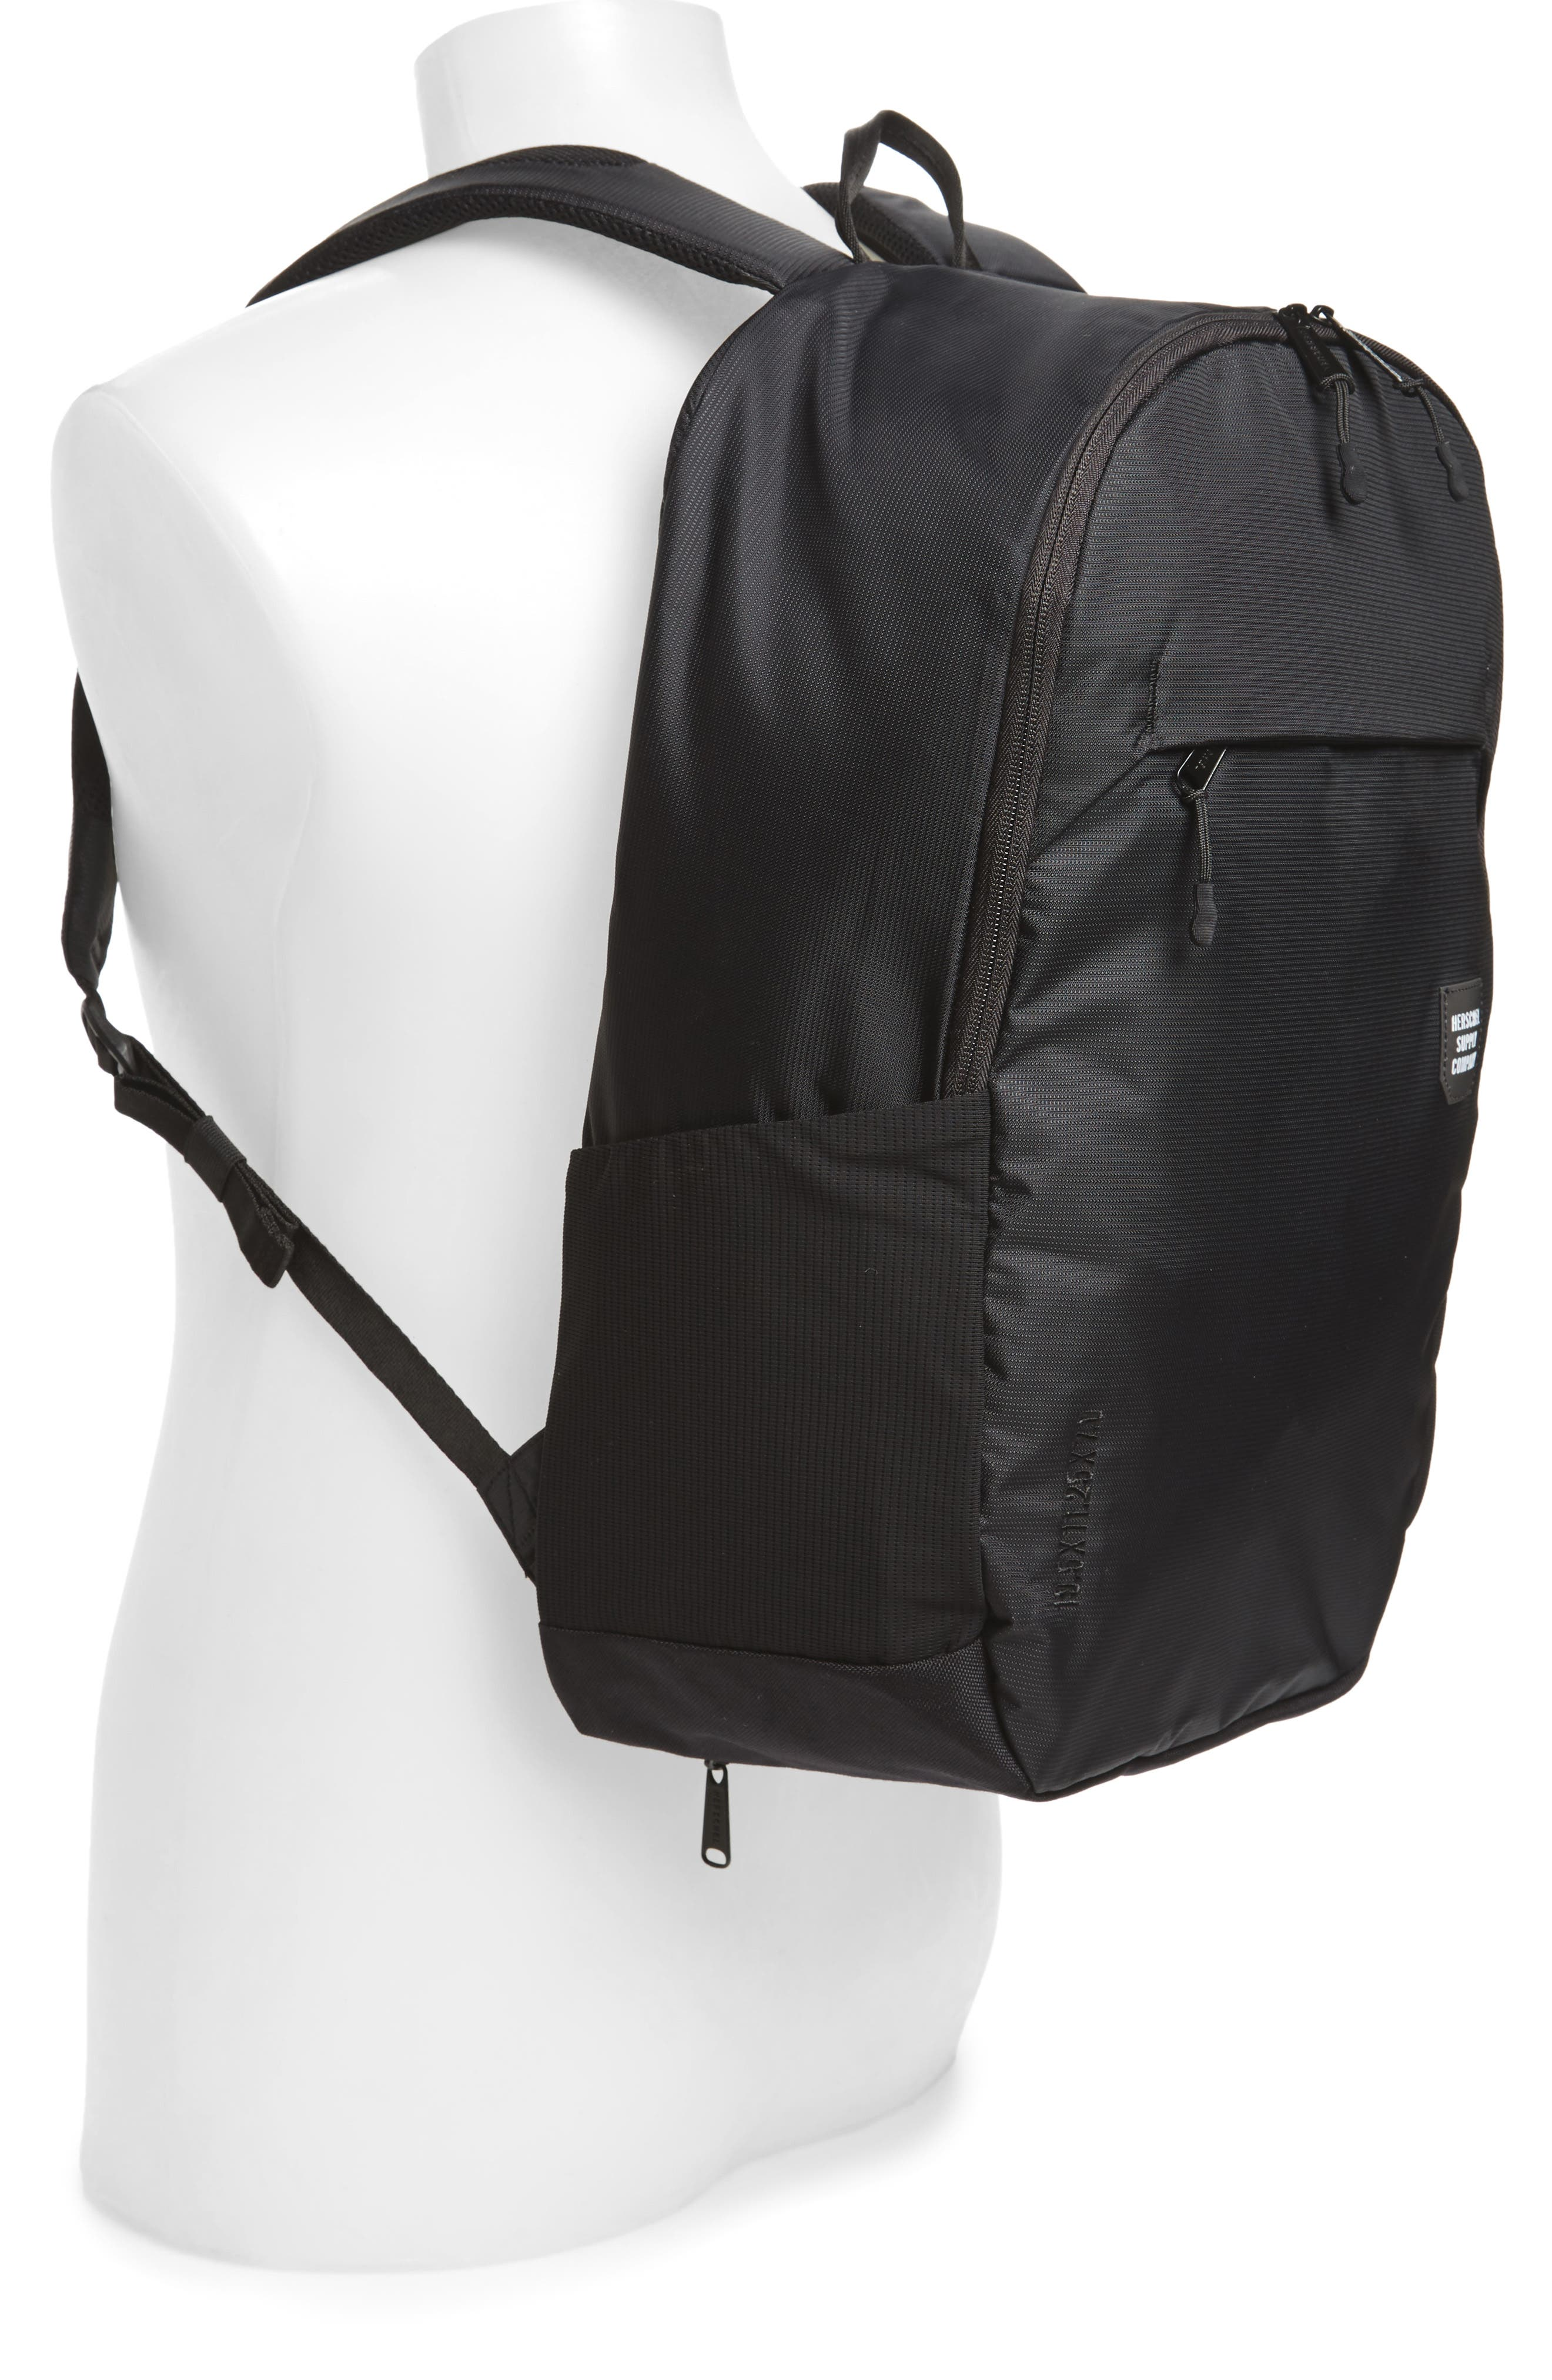 Mammoth Trail Backpack,                             Alternate thumbnail 2, color,                             Black